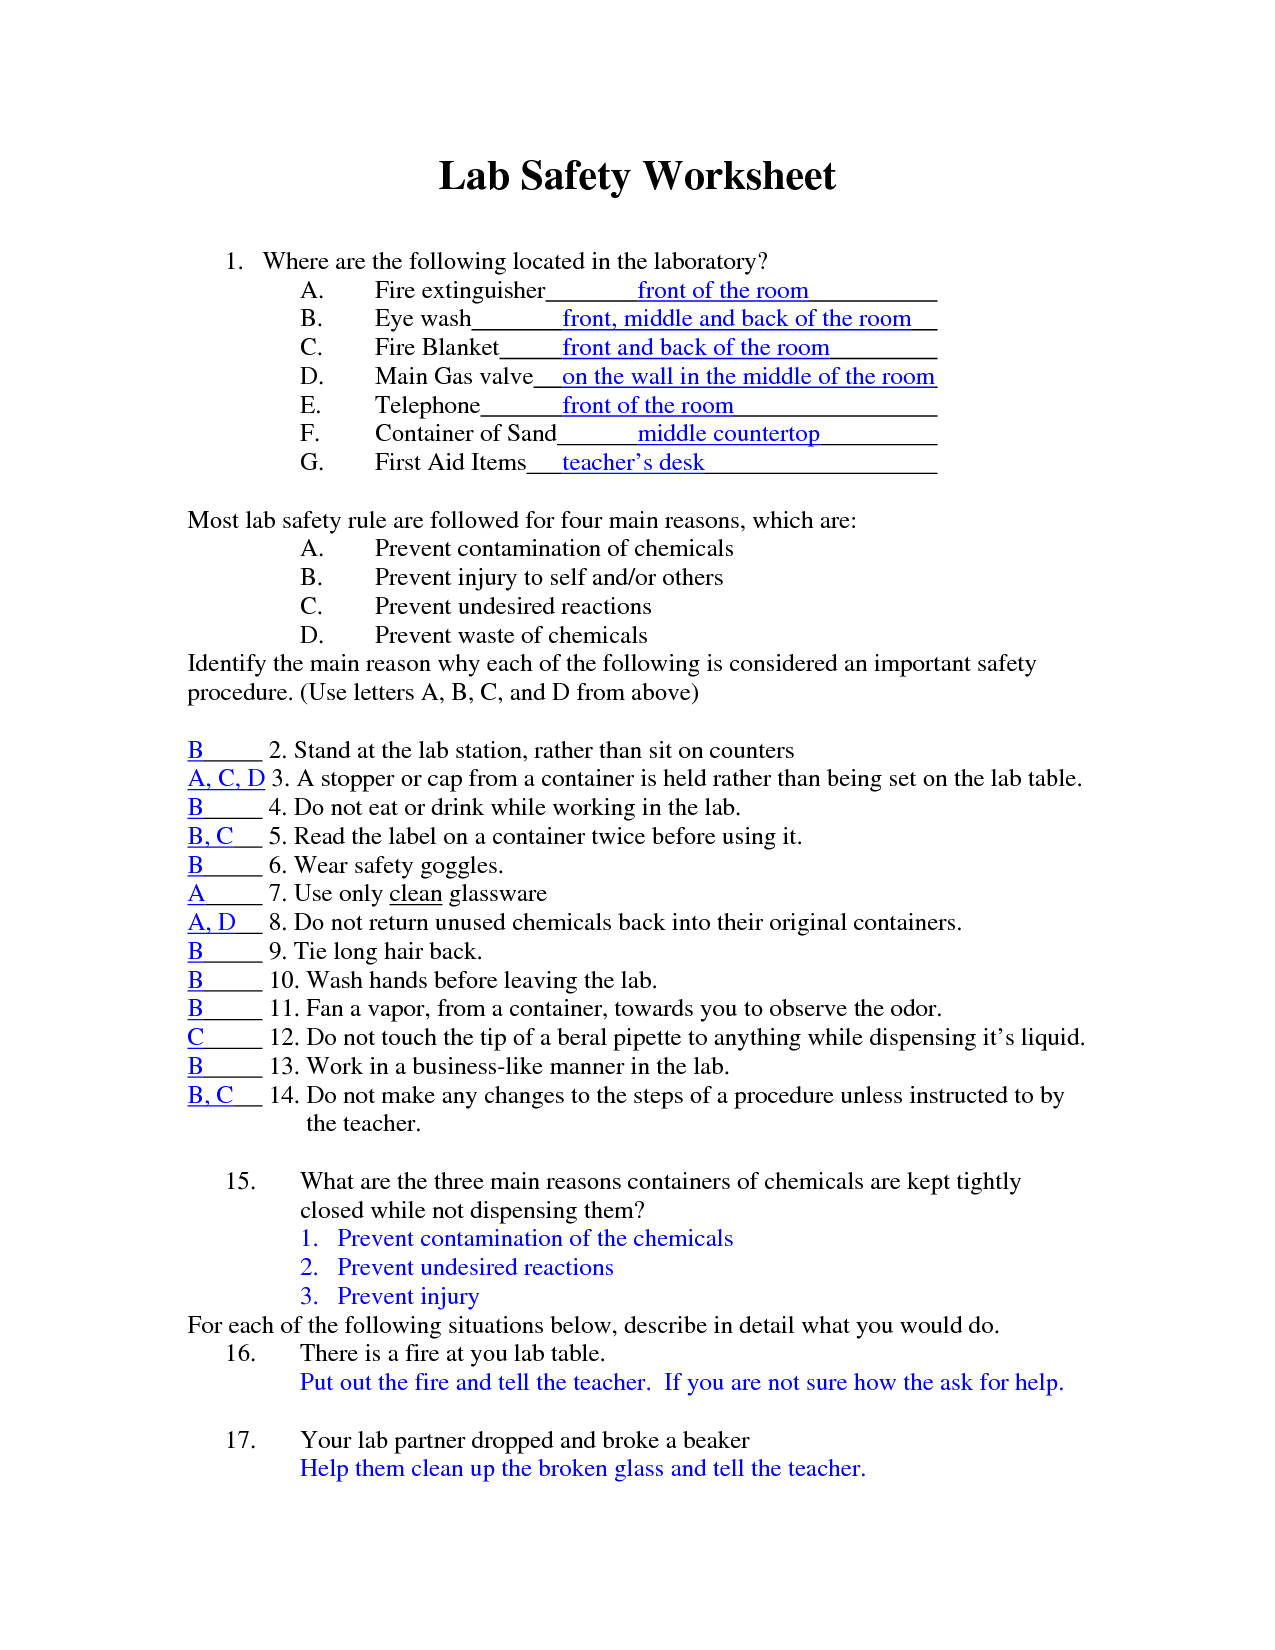 Lab Equipment Worksheet Answers Best Worksheet – Science Lab Equipment Worksheet